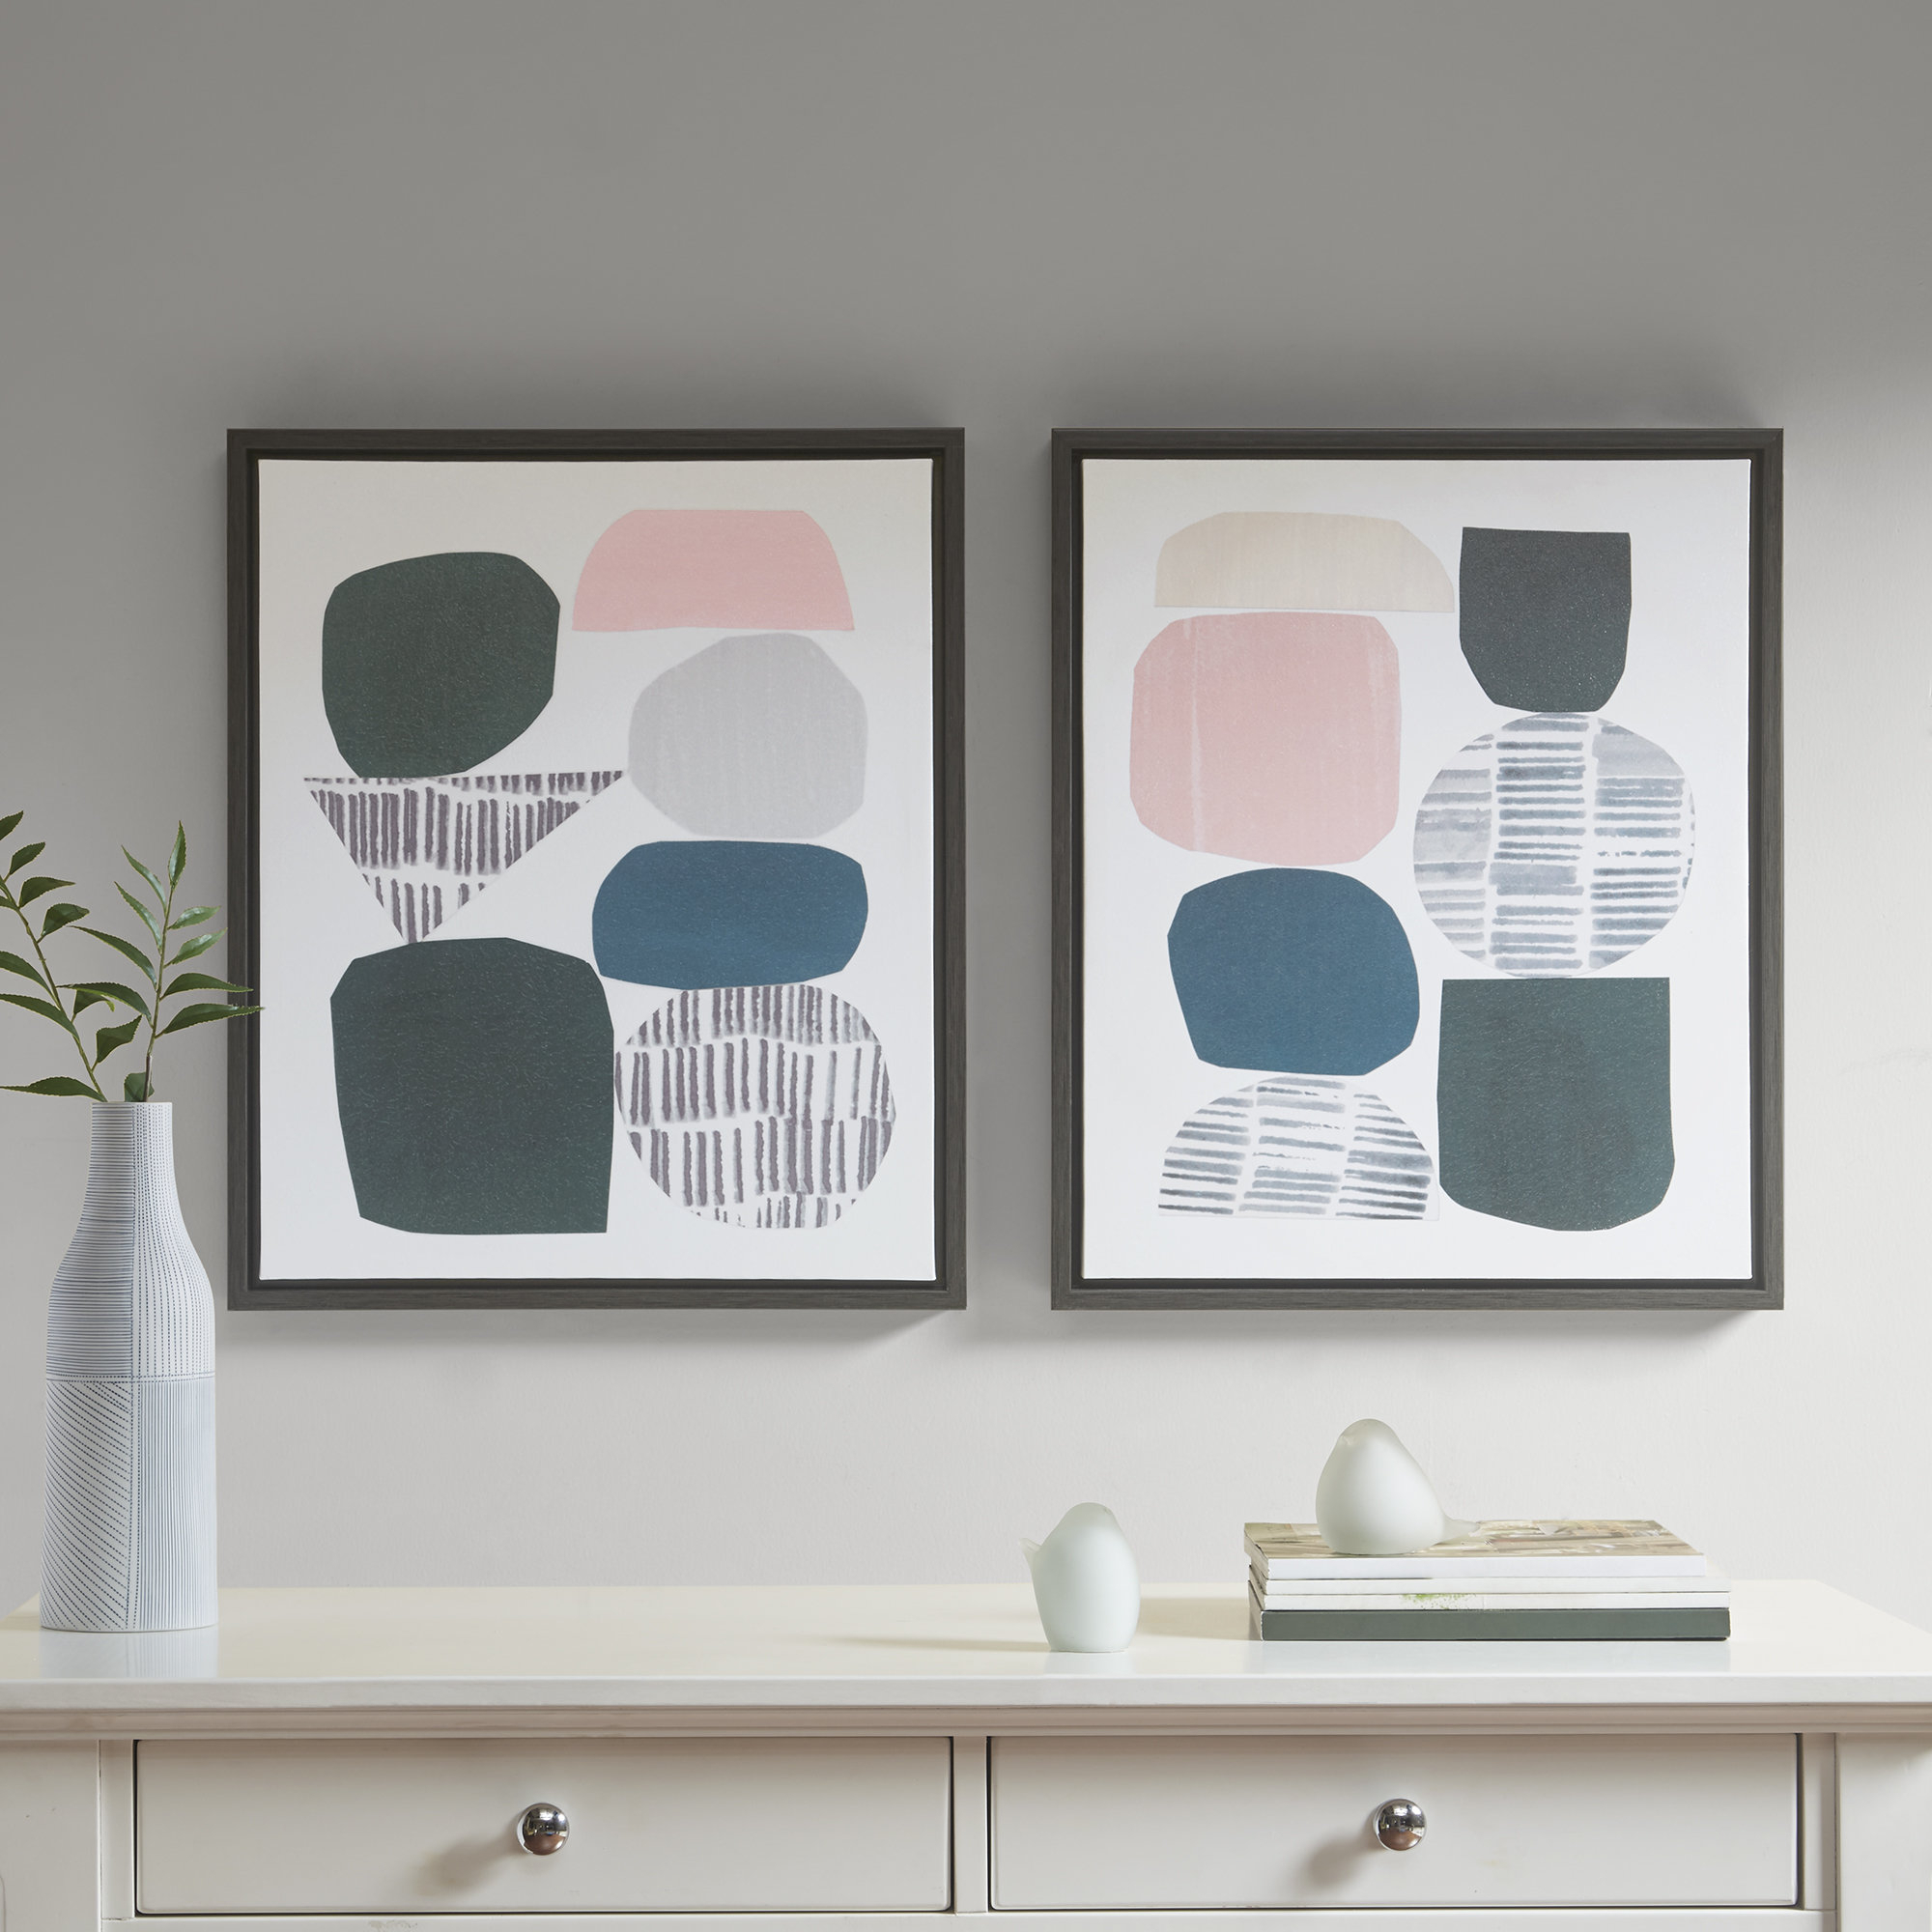 Modern Wall Art Sets | Allmodern With Regard To Panel Wood Wall Decor Sets (set Of 2) (View 20 of 30)